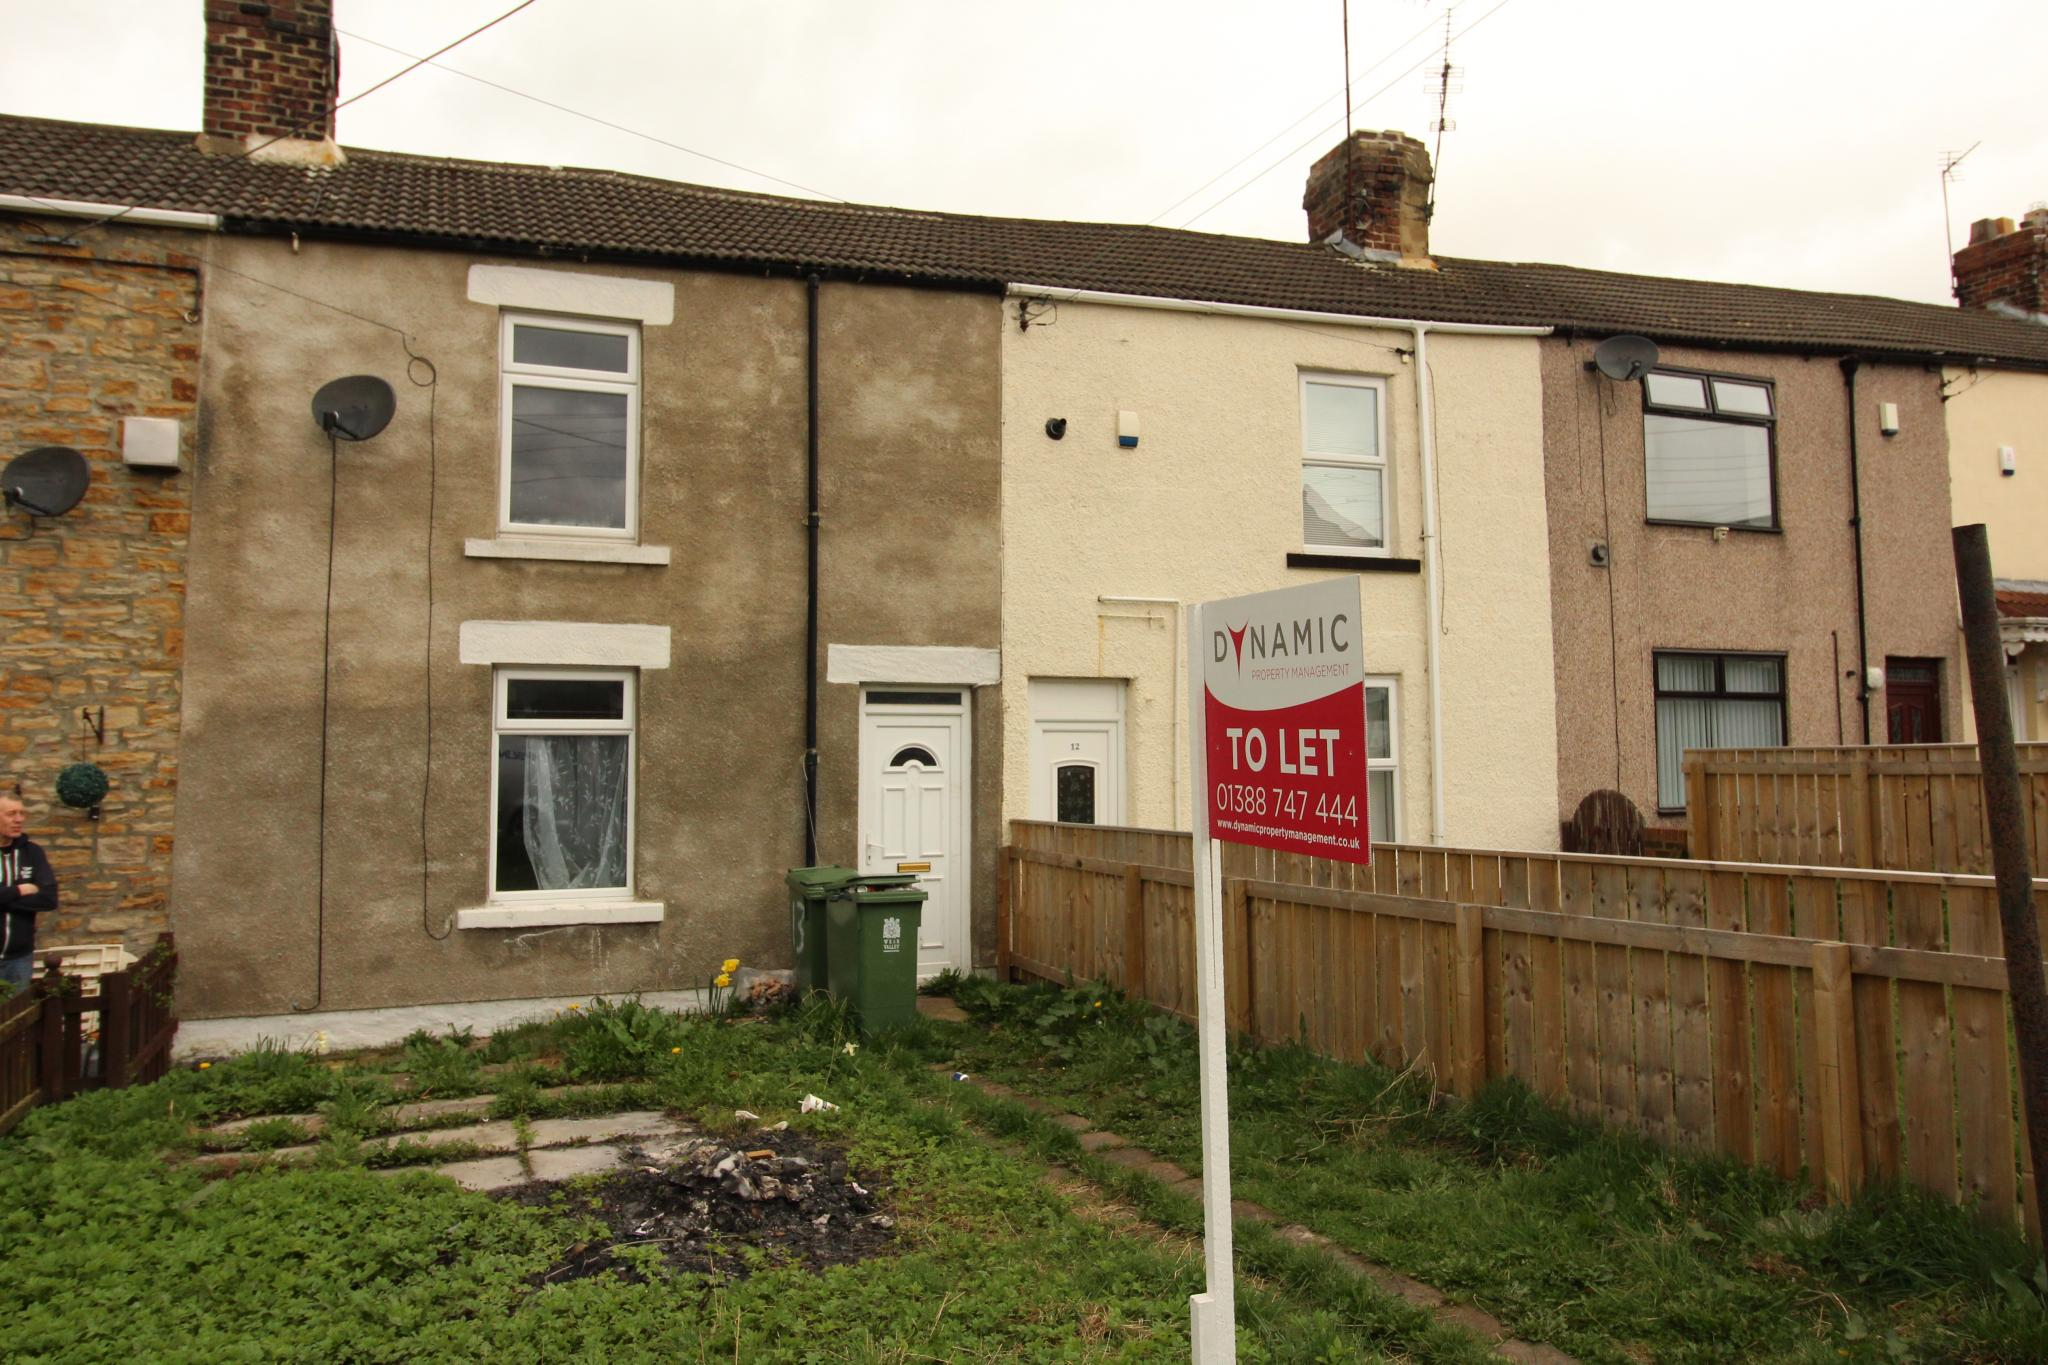 1 bedroom mid terraced house Let in Crook - Photograph 1.